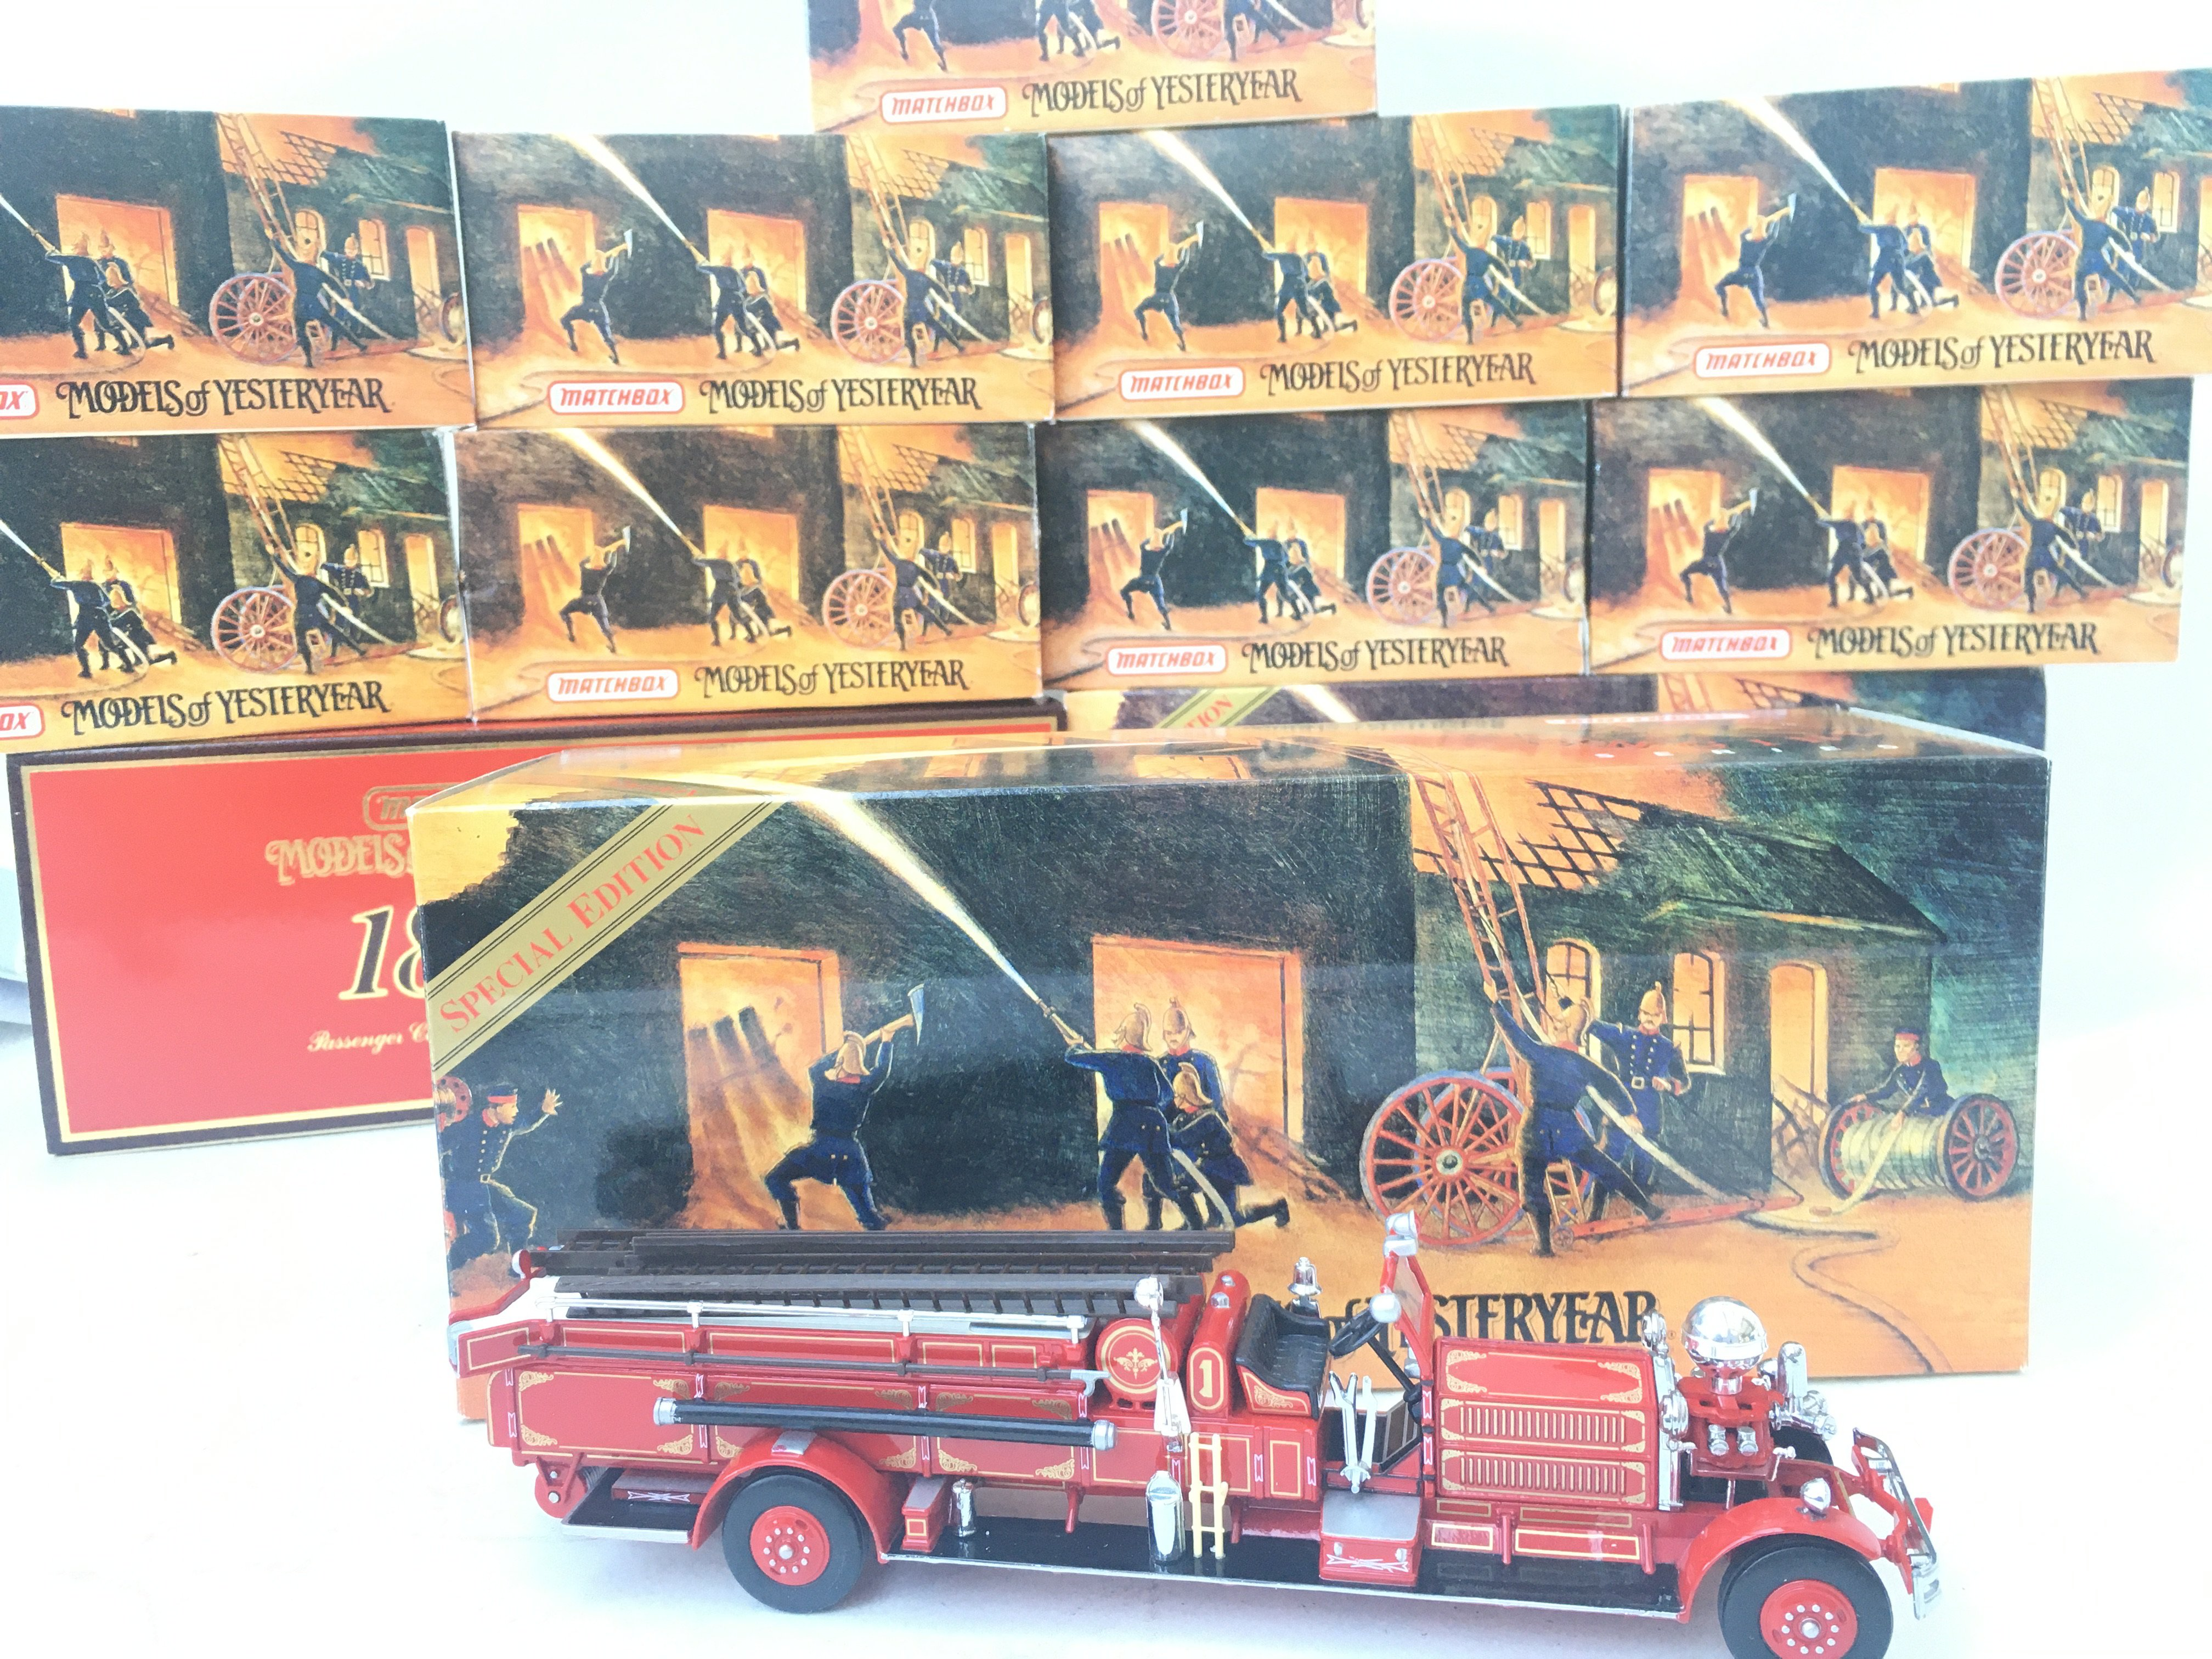 A Collection of Matchbox Models of Yesteryear mostly the Fire Engine Series. All Boxed. - Image 2 of 3